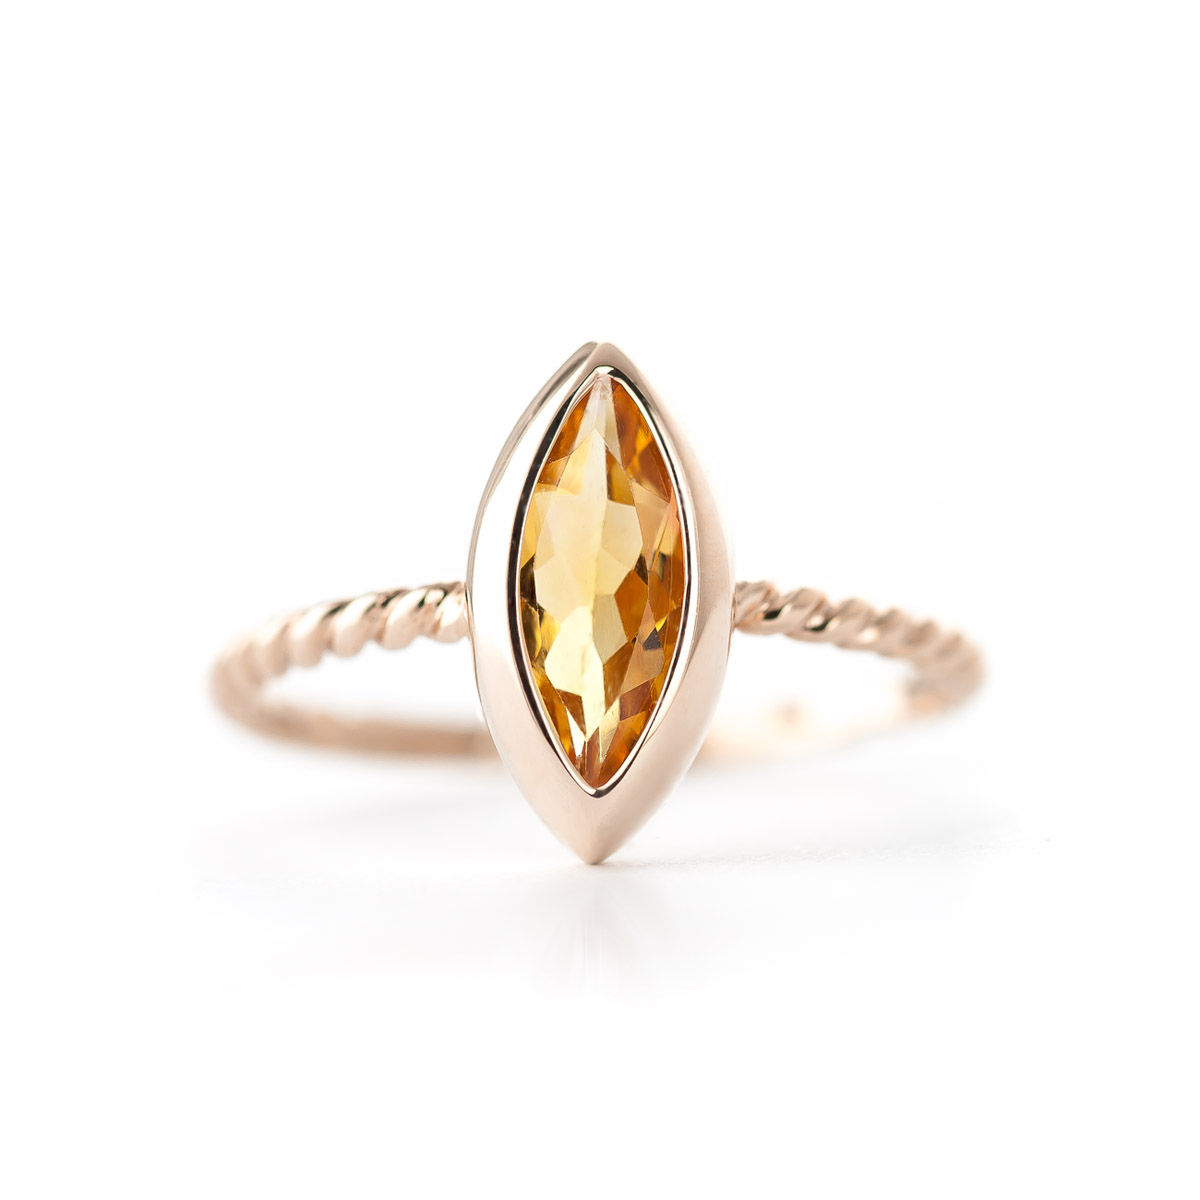 Marquise Cut Citrine Ring 1.7ct in 14K Rose Gold